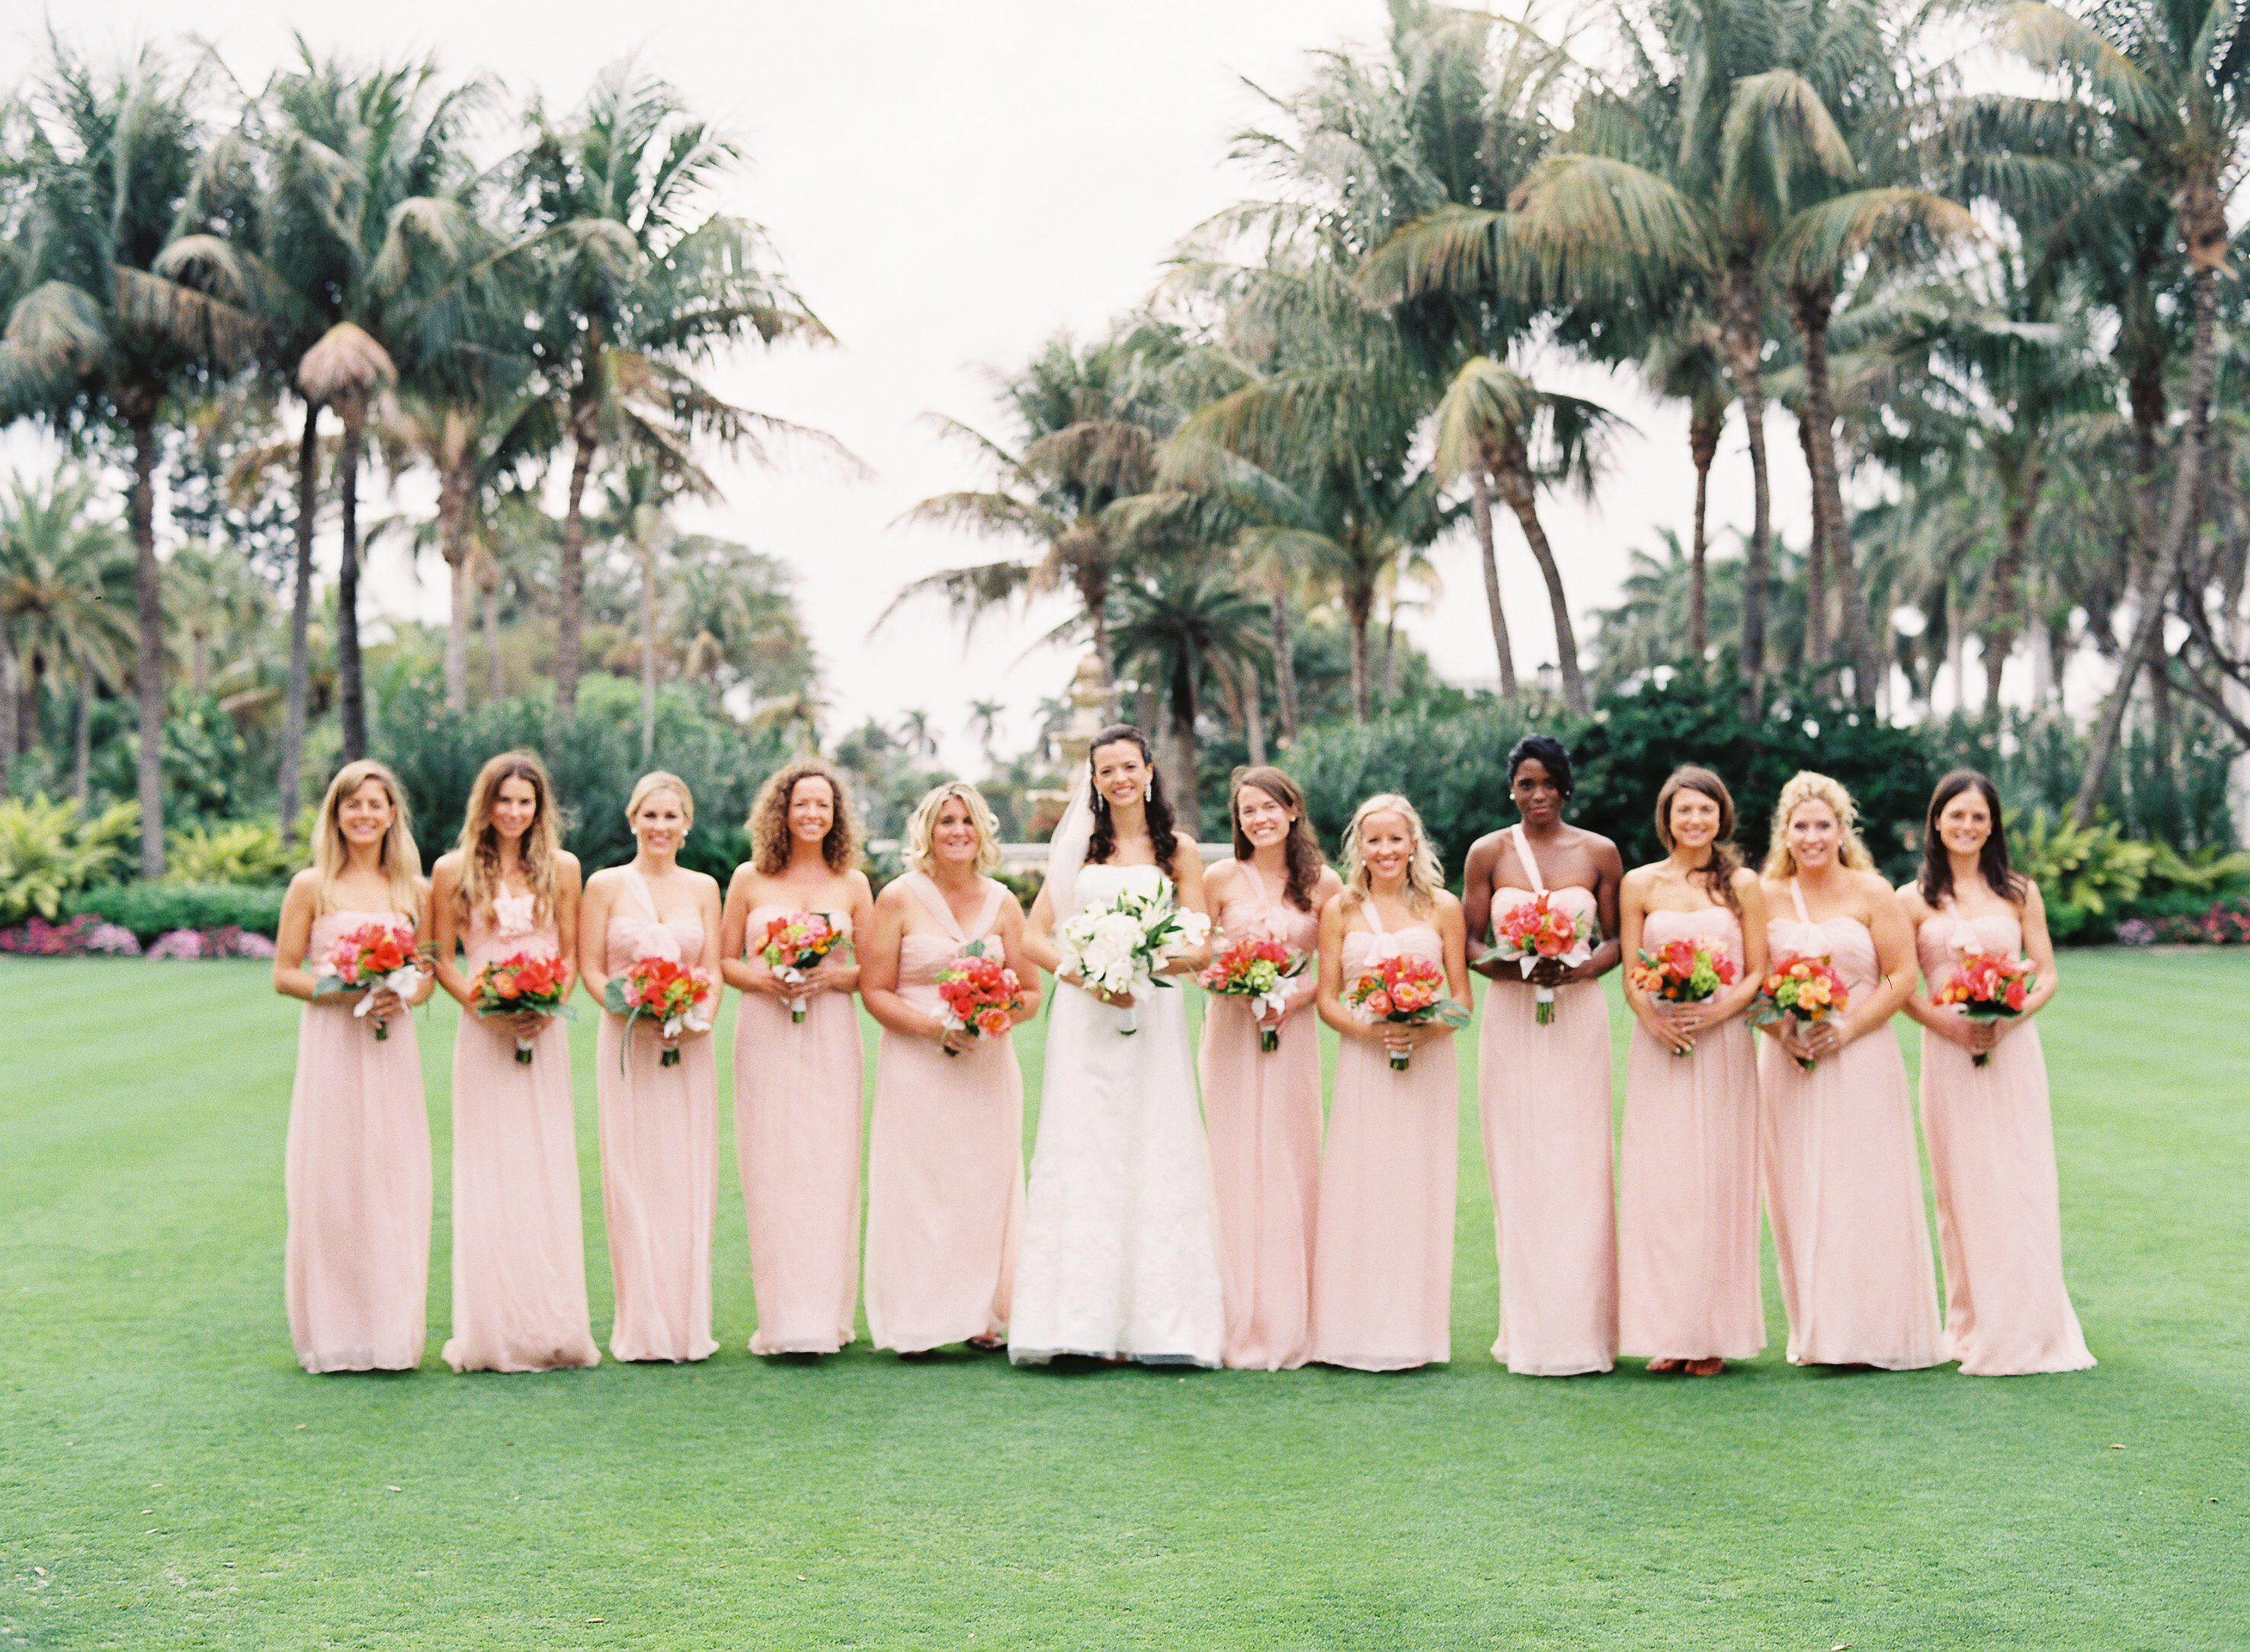 Bridesmaids, Real Weddings, pink, Classic, Southern Real Weddings, Bridal party, Elegant, Florida, Southern weddings, florida real weddings, florida weddings